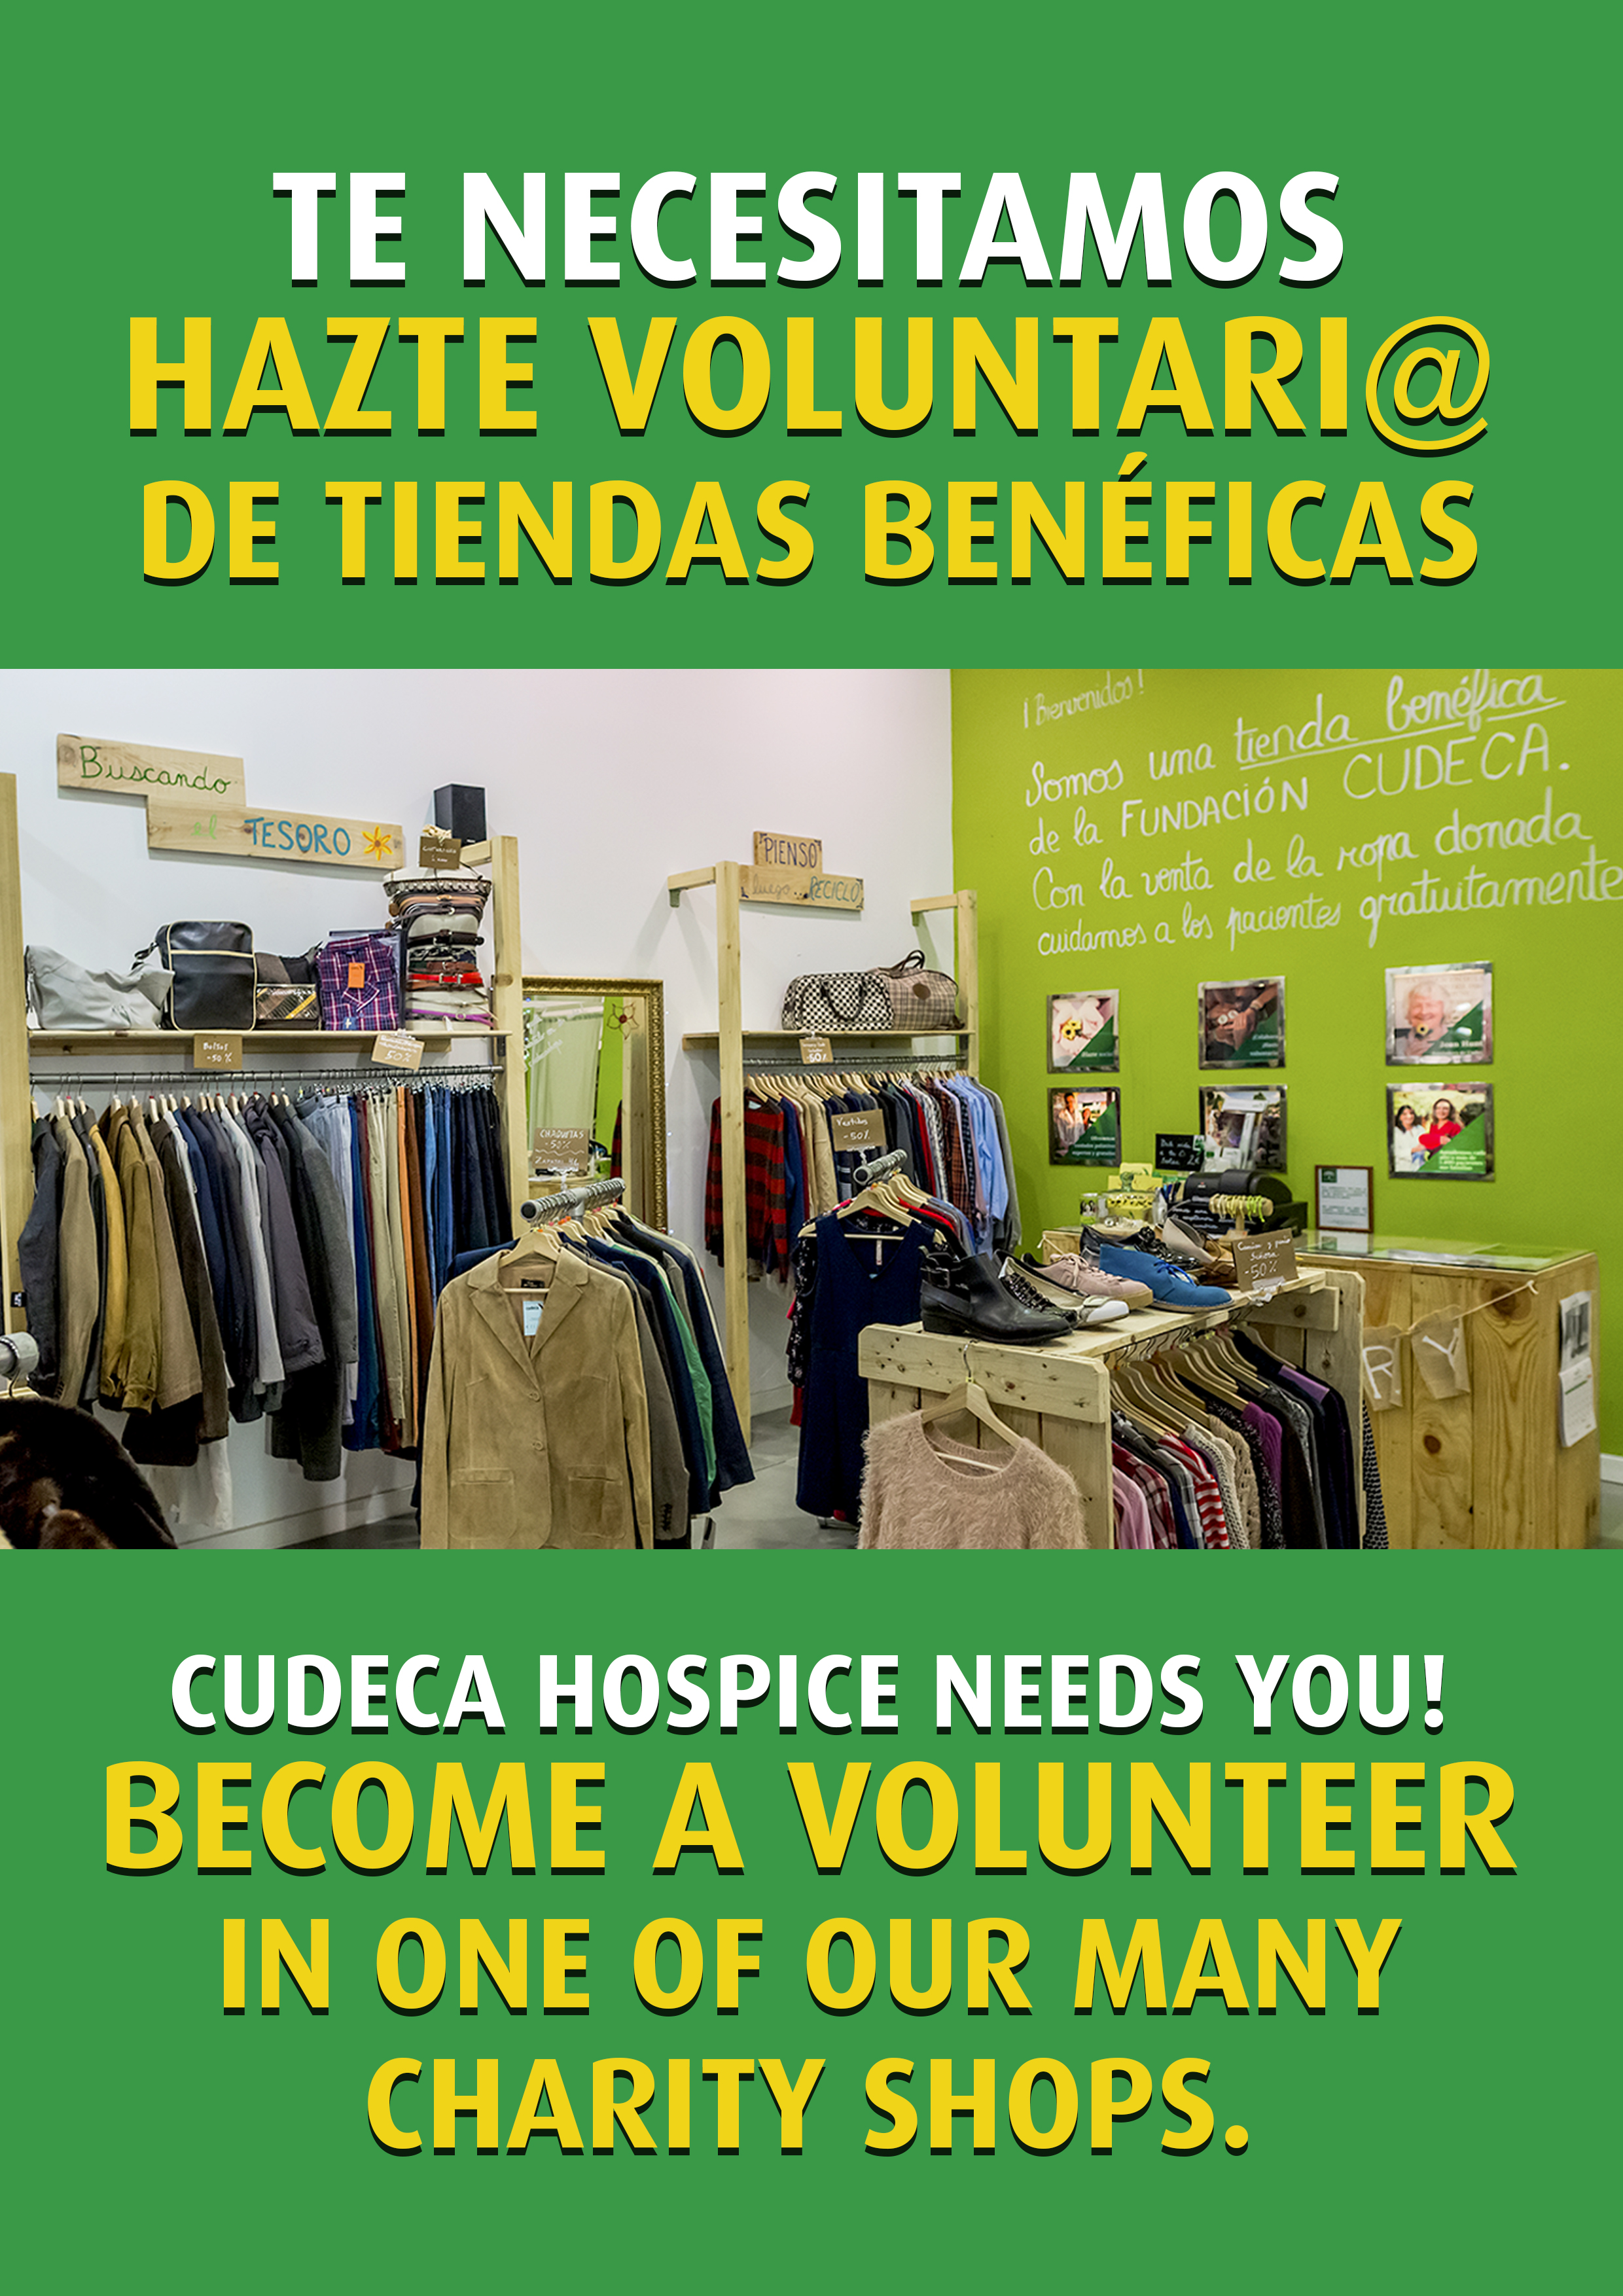 Our charity shops need volunteers